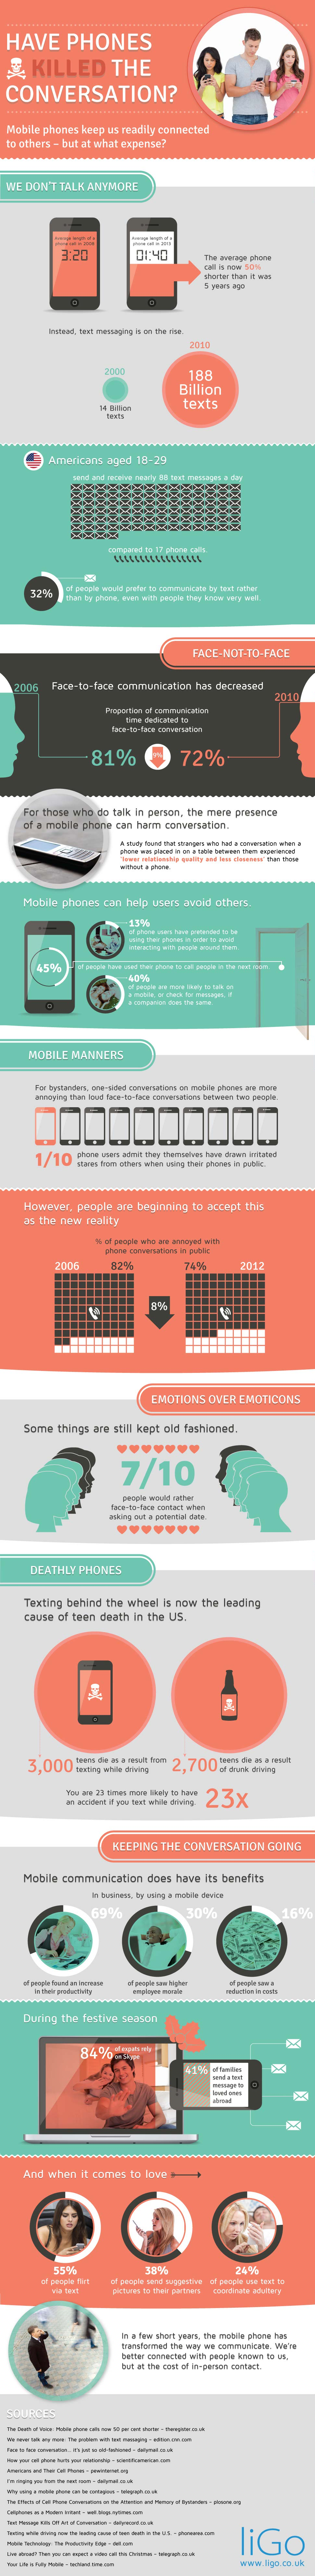 Mobile Phone Social Isolation-Infographic